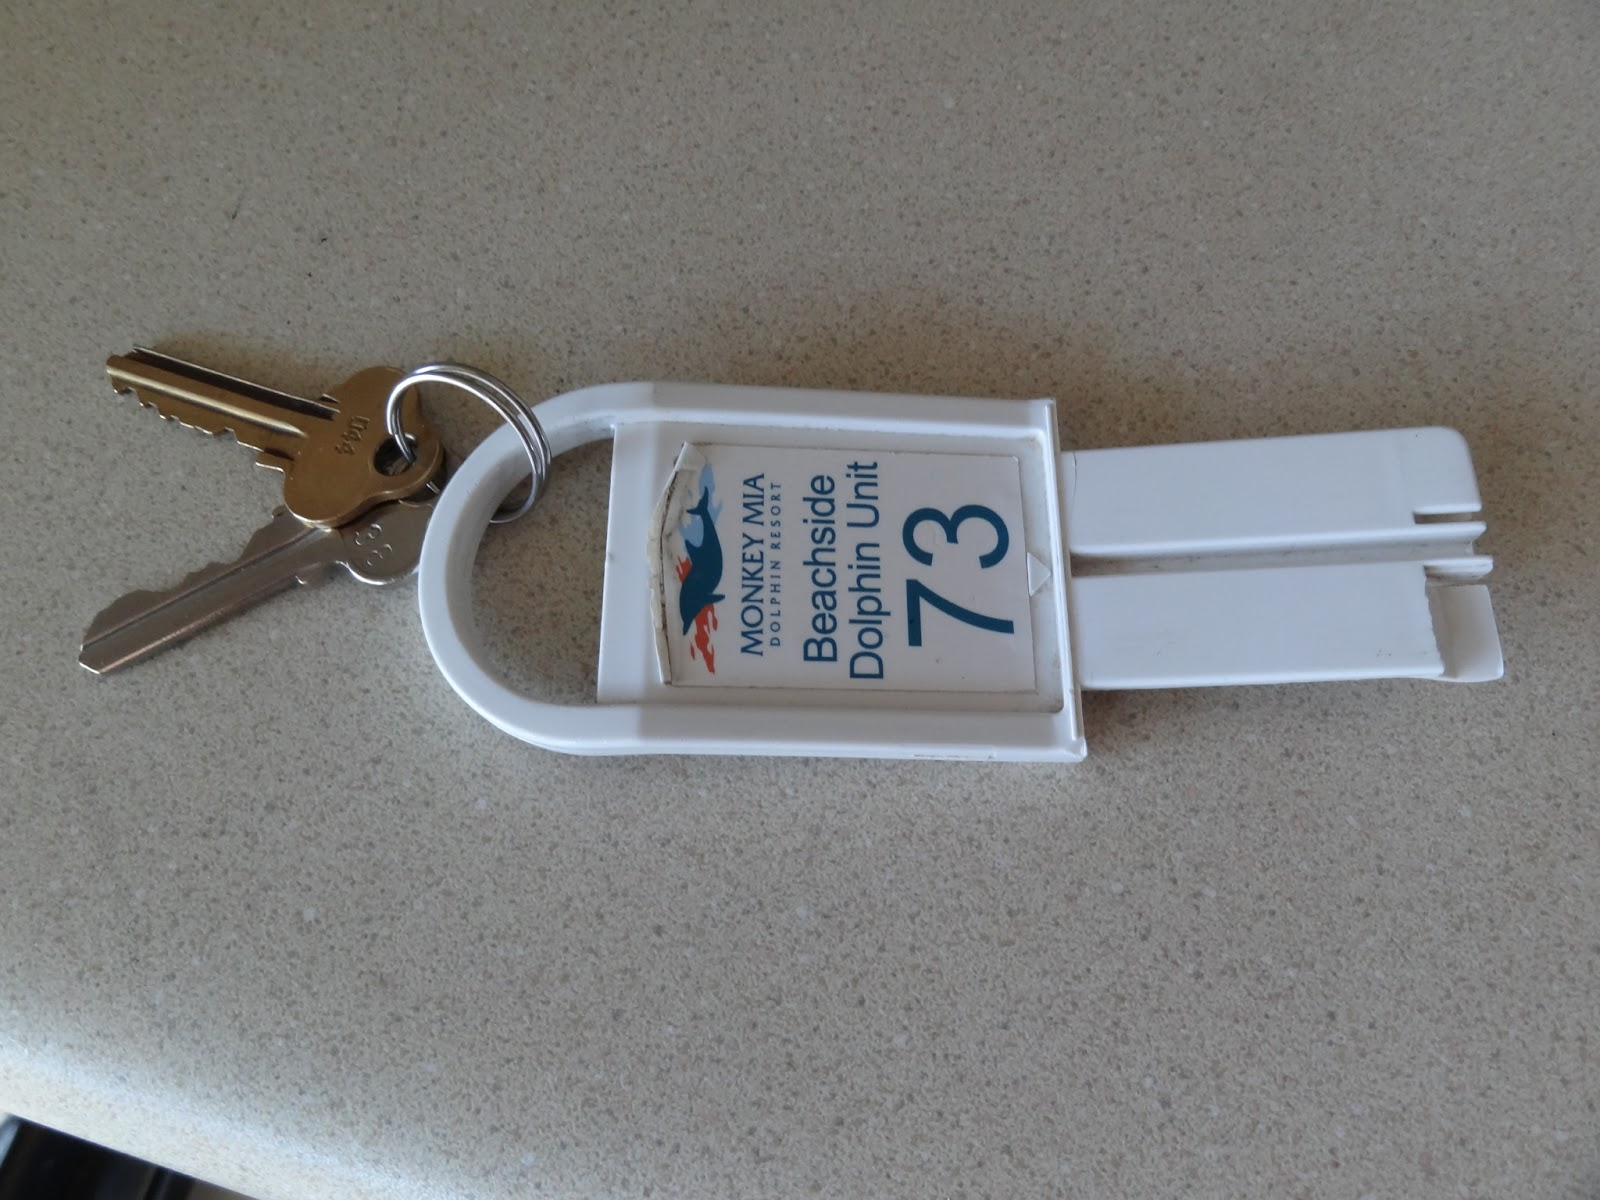 the most annoying hotel key ever!